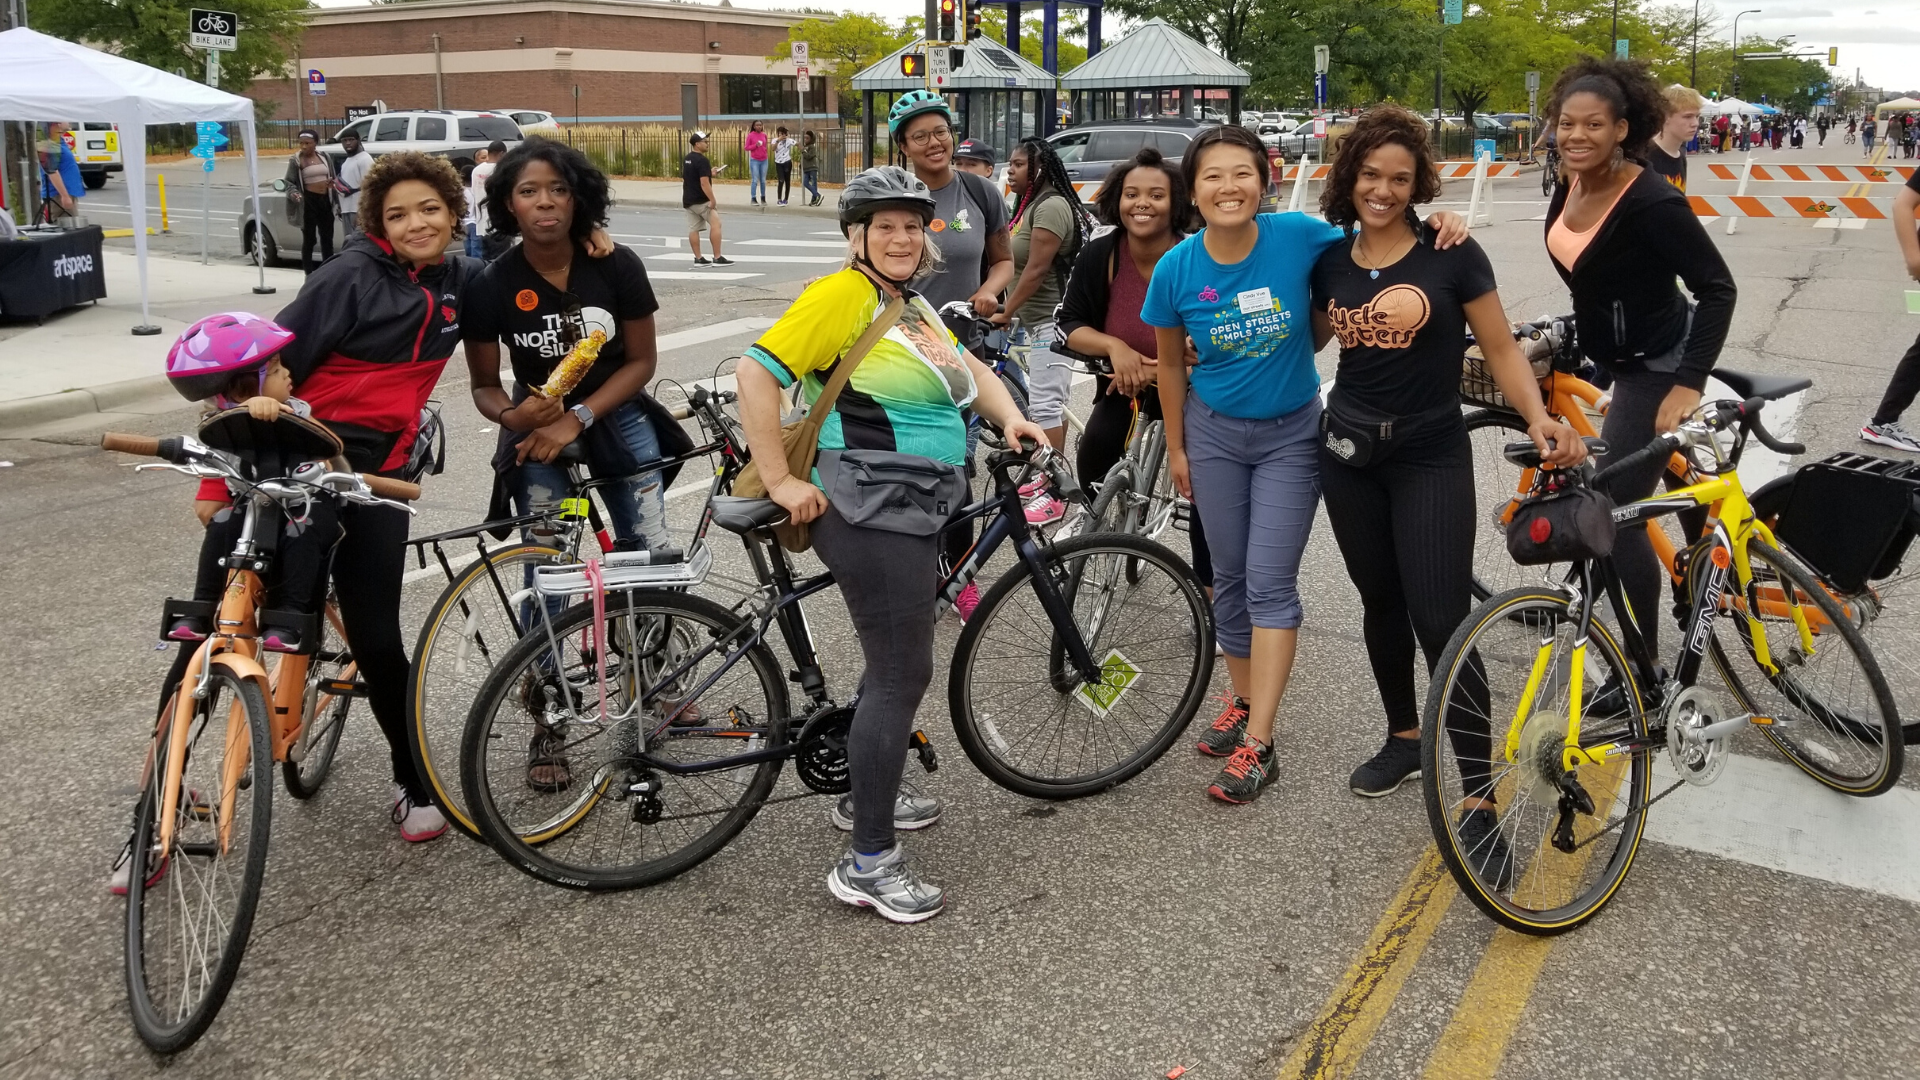 Folks biking with the Cleveland Neighborhood Association Cycle Sisters at Open Streets West Broadway